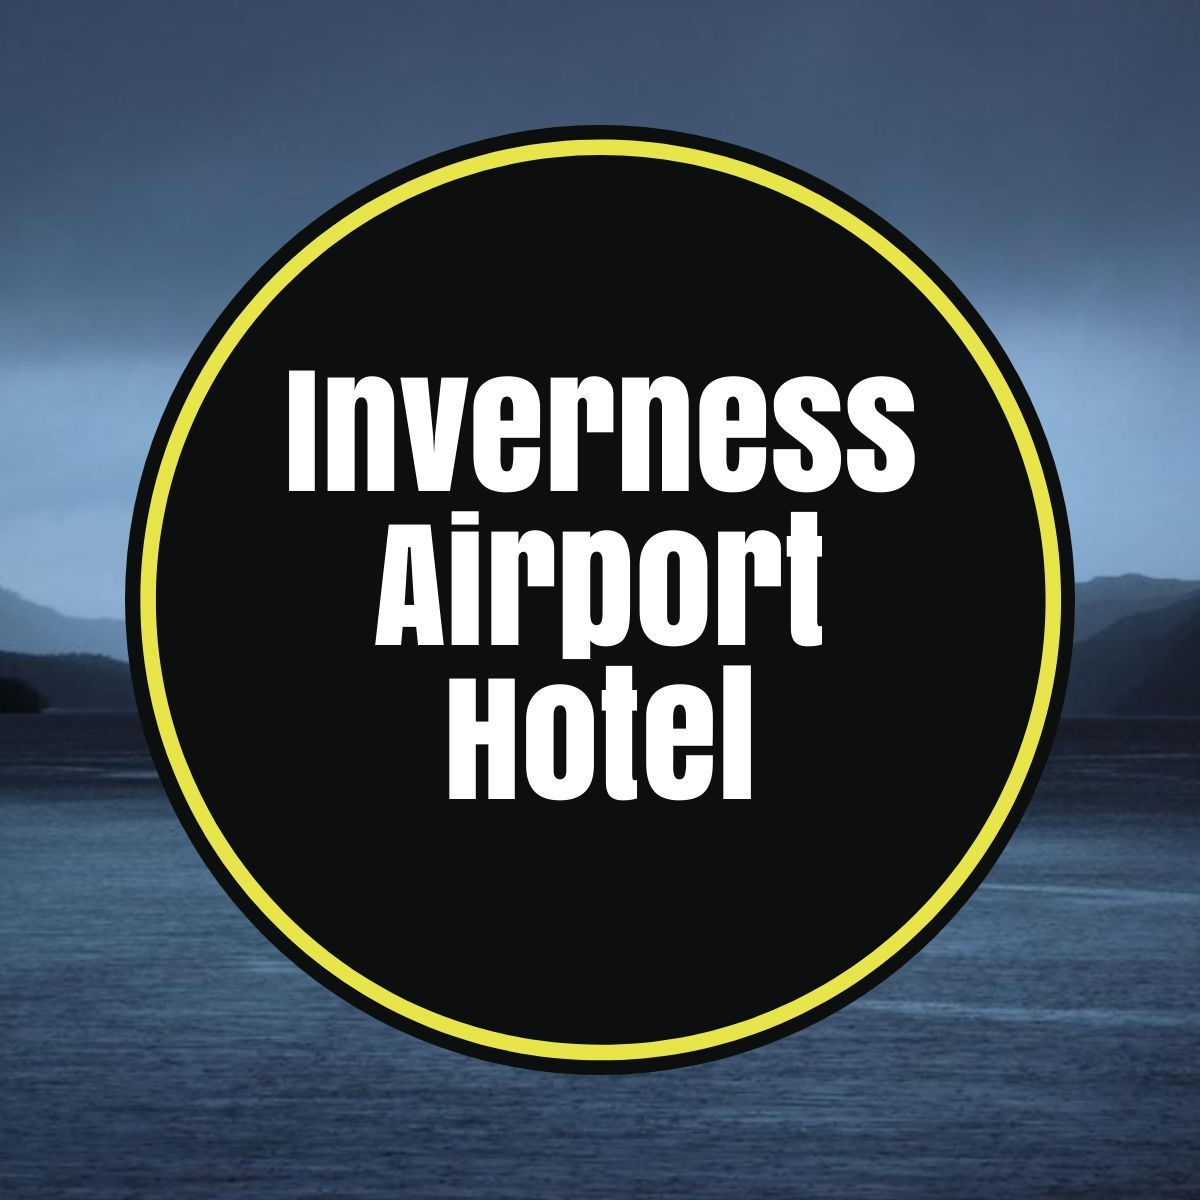 inverness airport hotel the professional traveller